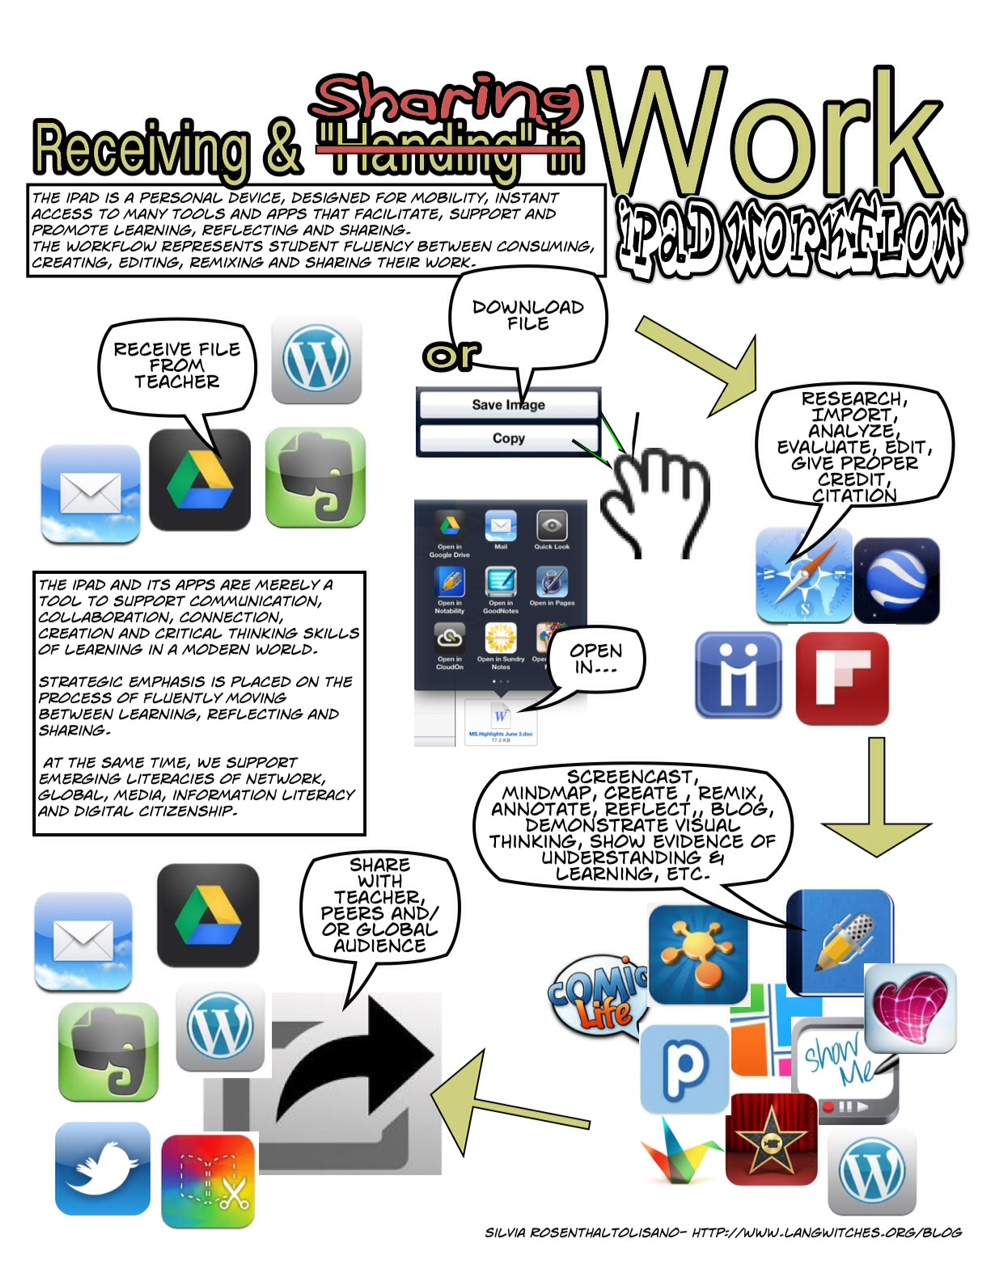 ipad-workflow-receiving-sharing